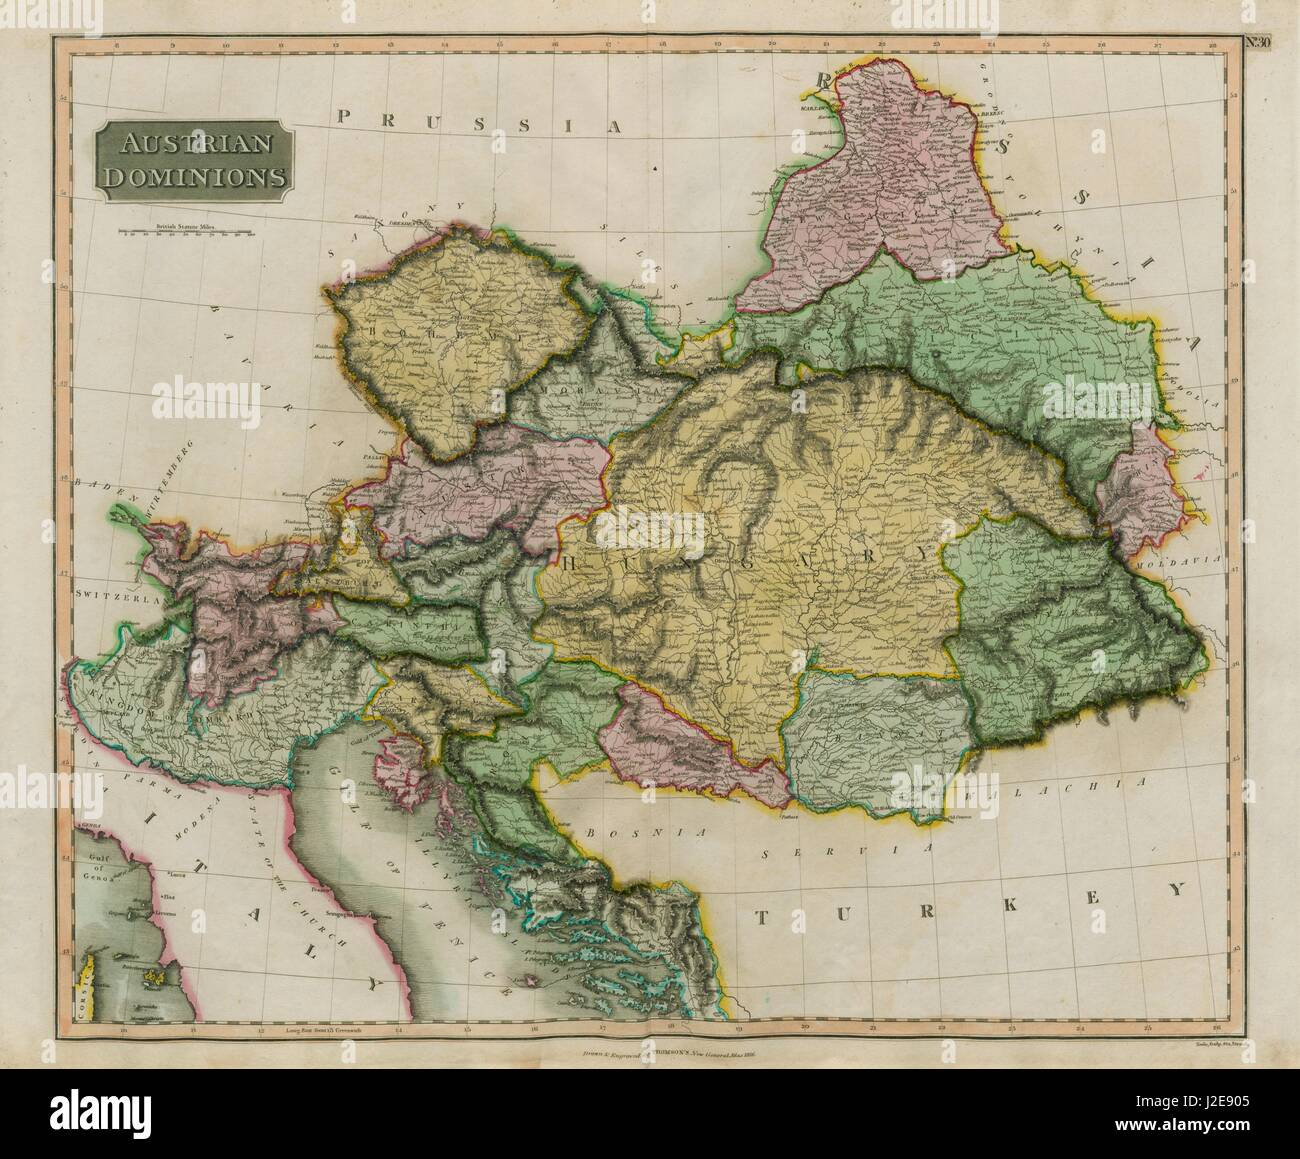 'Austrian dominions'. Austrian Empire. Includes West Galicia. THOMSON 1817 map - Stock Image